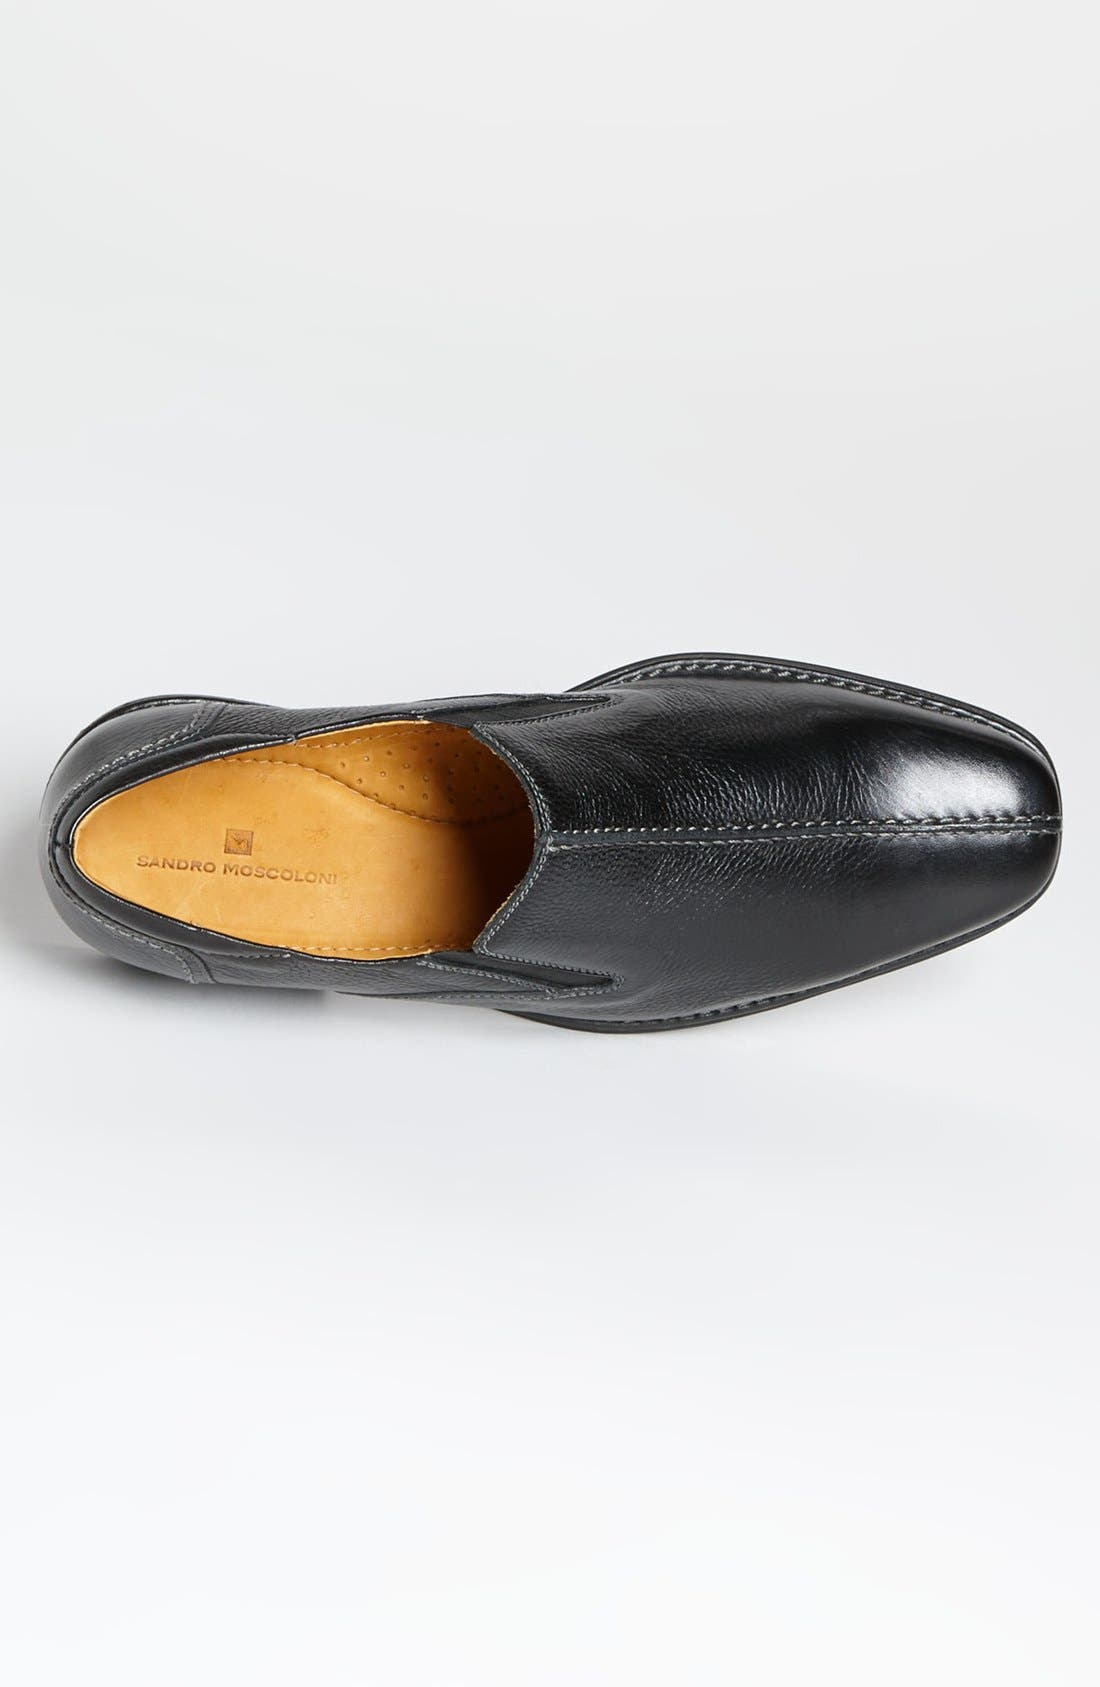 Alternate Image 3  - Sandro Moscoloni 'Tampa' Loafer